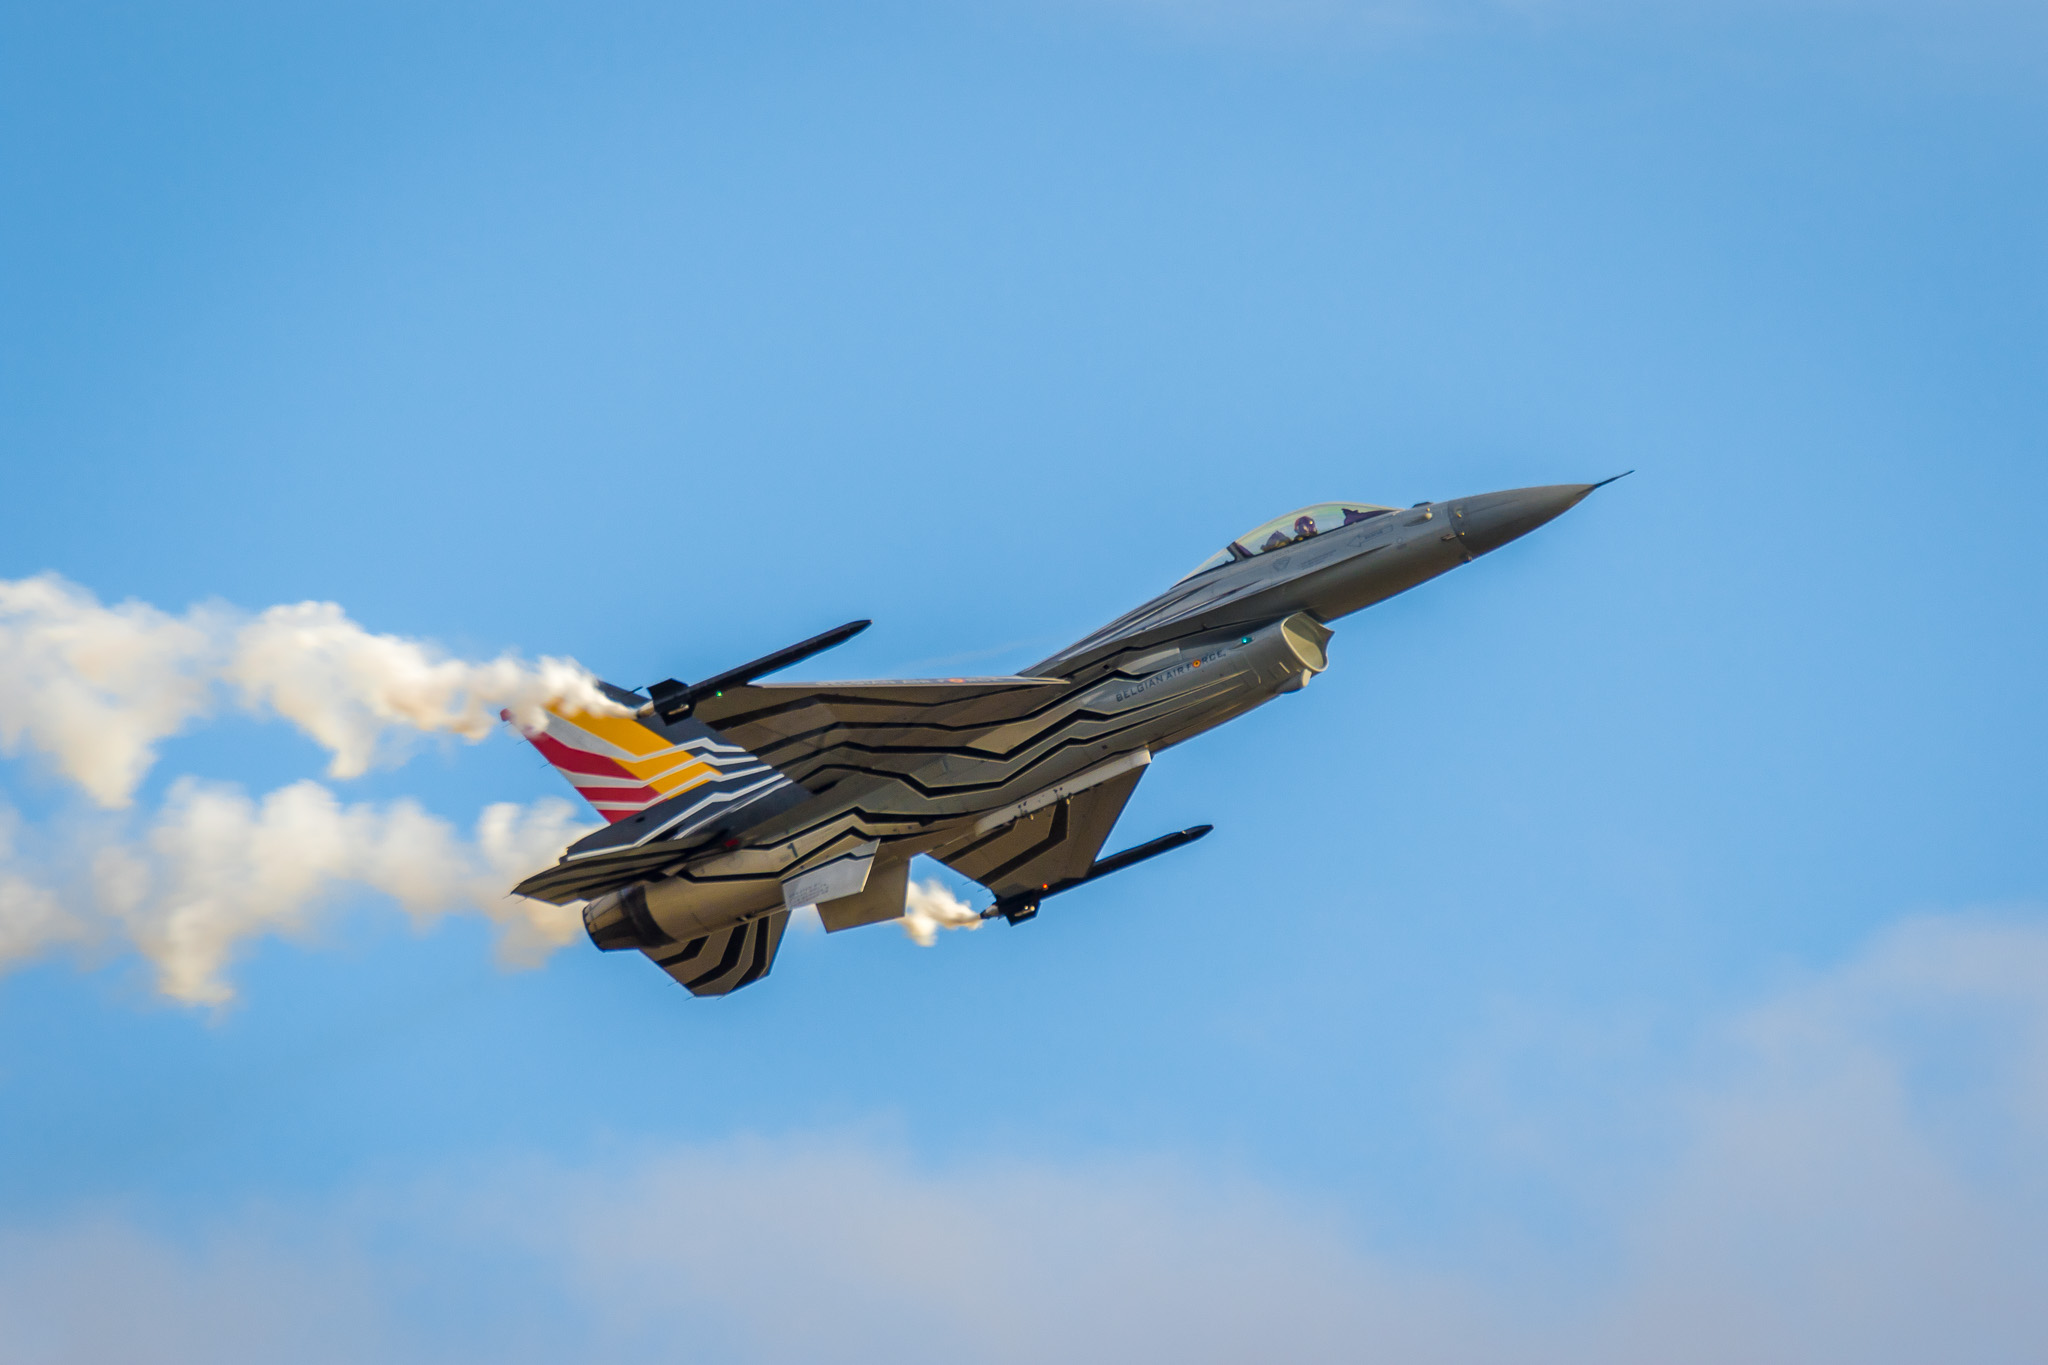 BAF F-16 Demo Flown by Gizmo at 2017 Sanicole Air Show